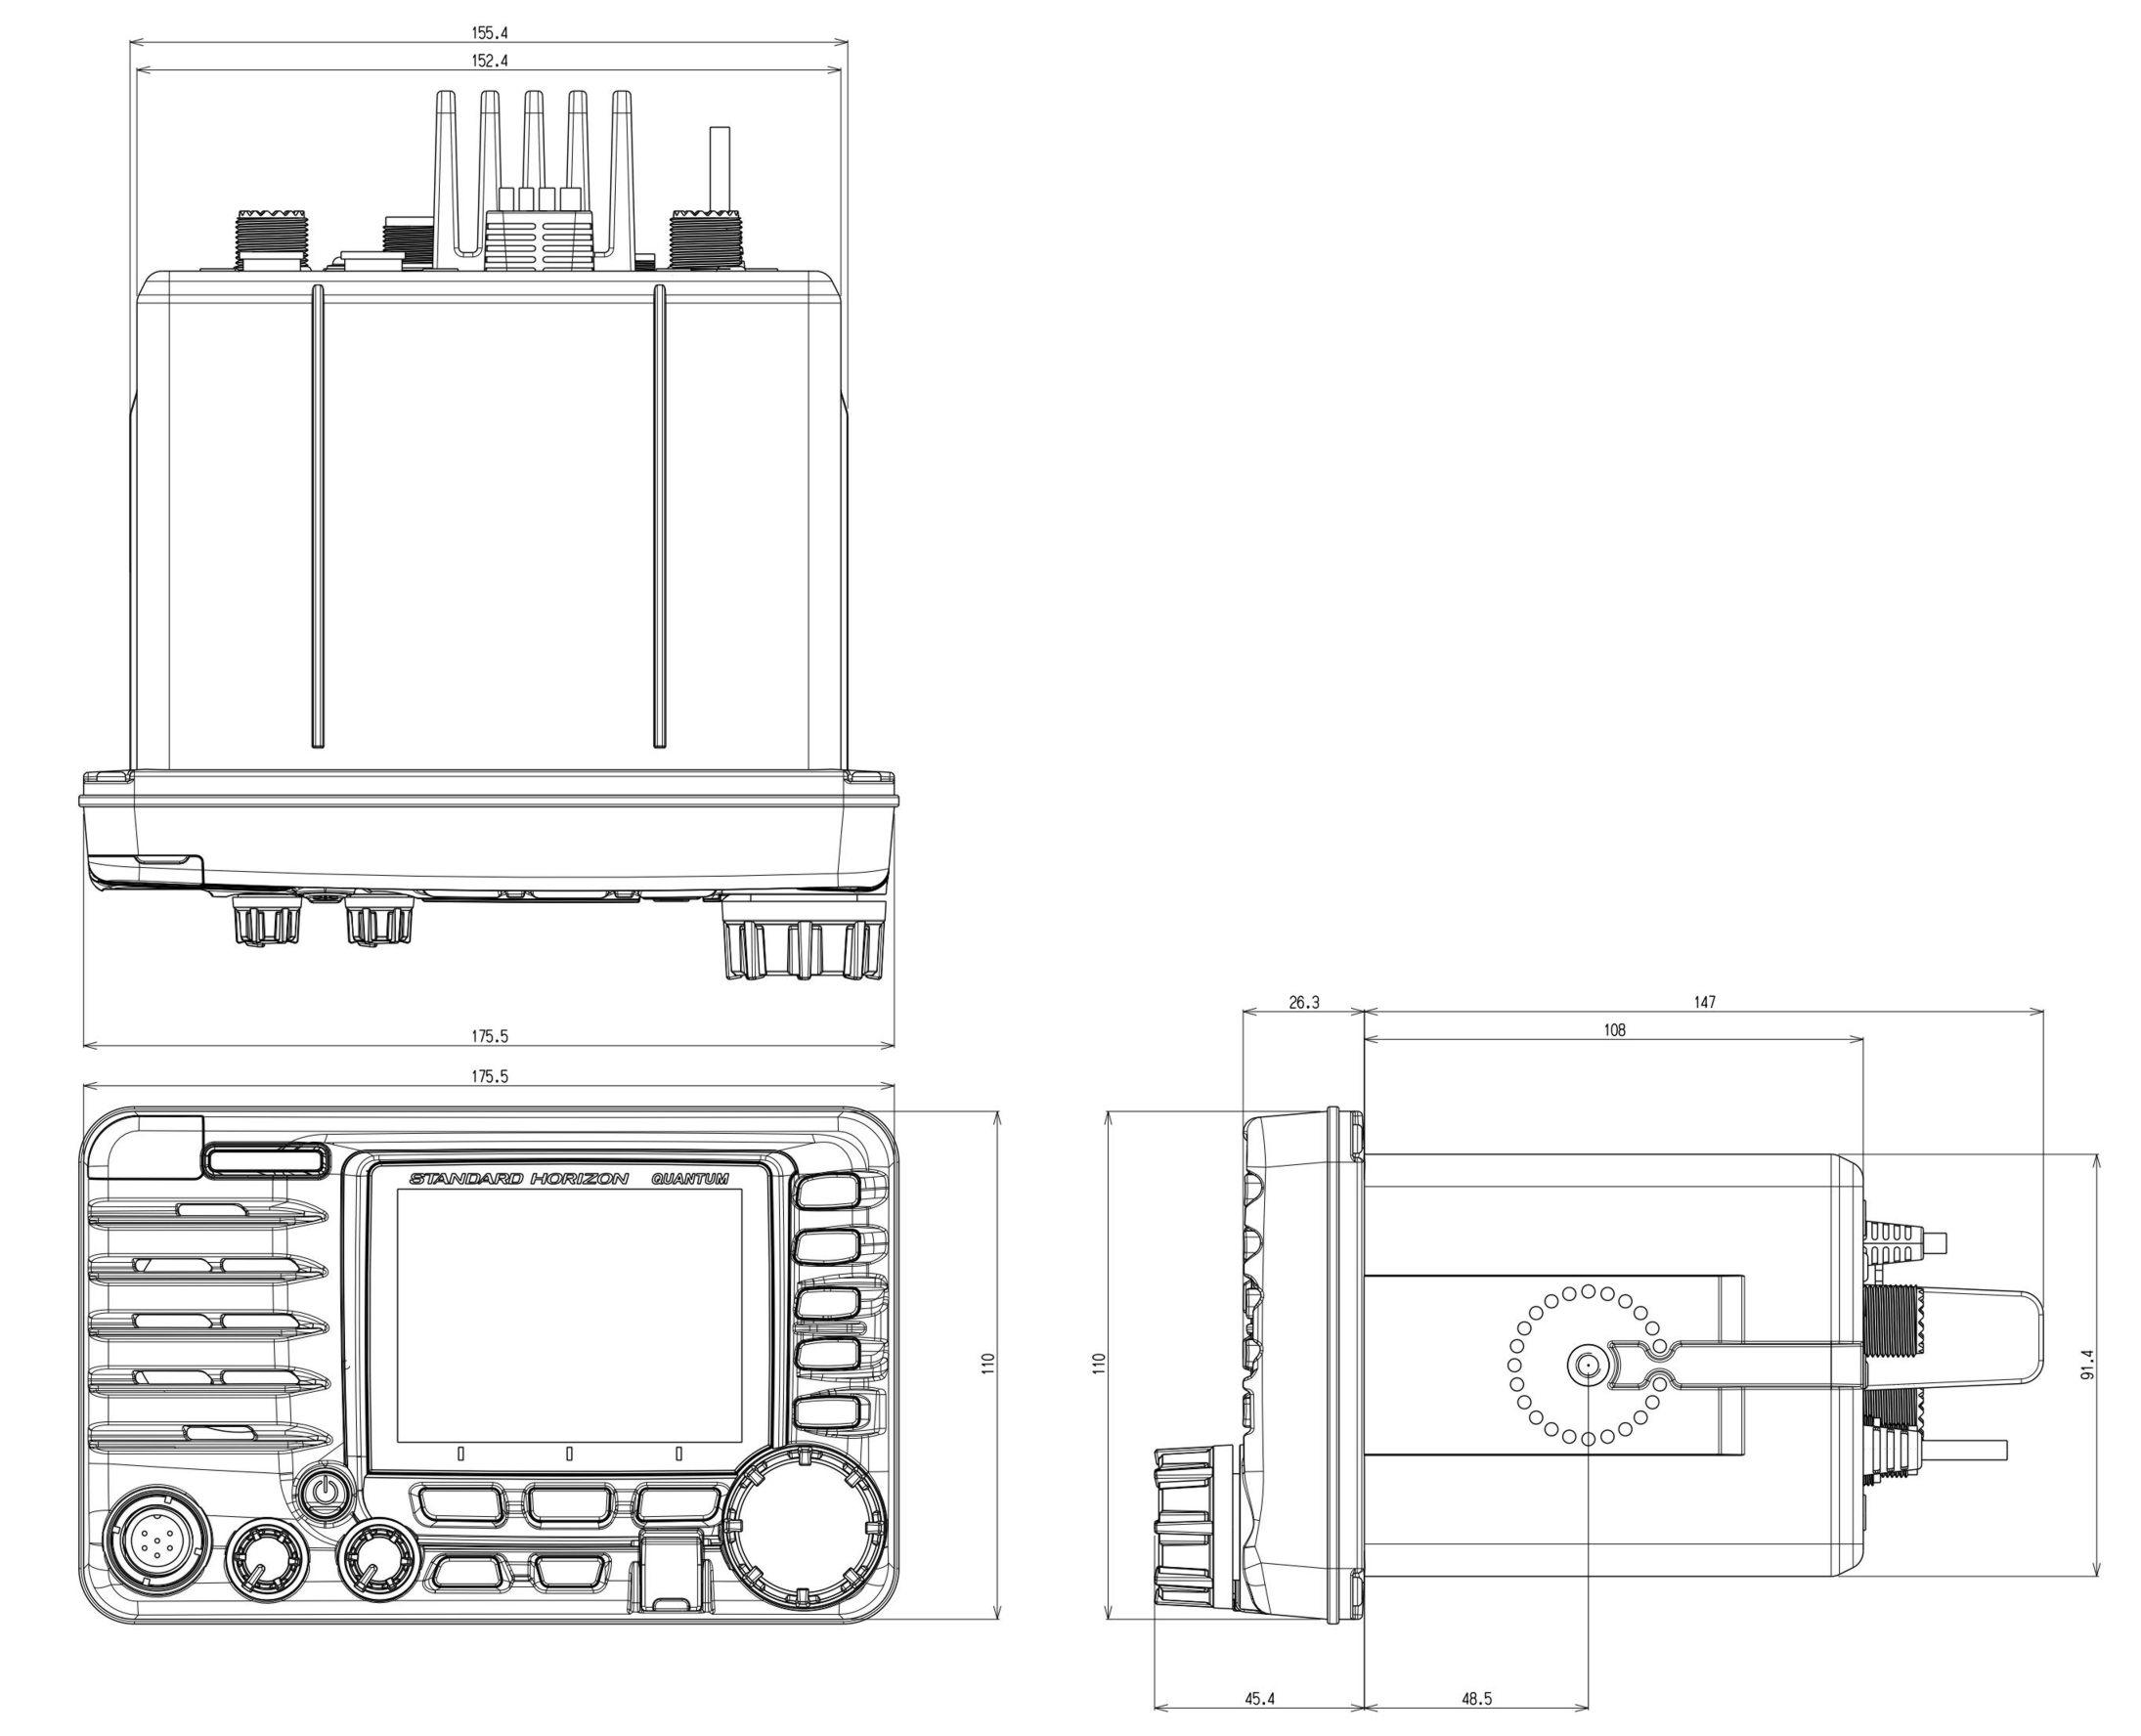 Raymarine A78 Wiring Diagram Question About Transducer Panbo The Marine Electronics Hub Standard Horizon Gx6500 A Loaded Vhf Radio Also Integrated Diagrams C 97